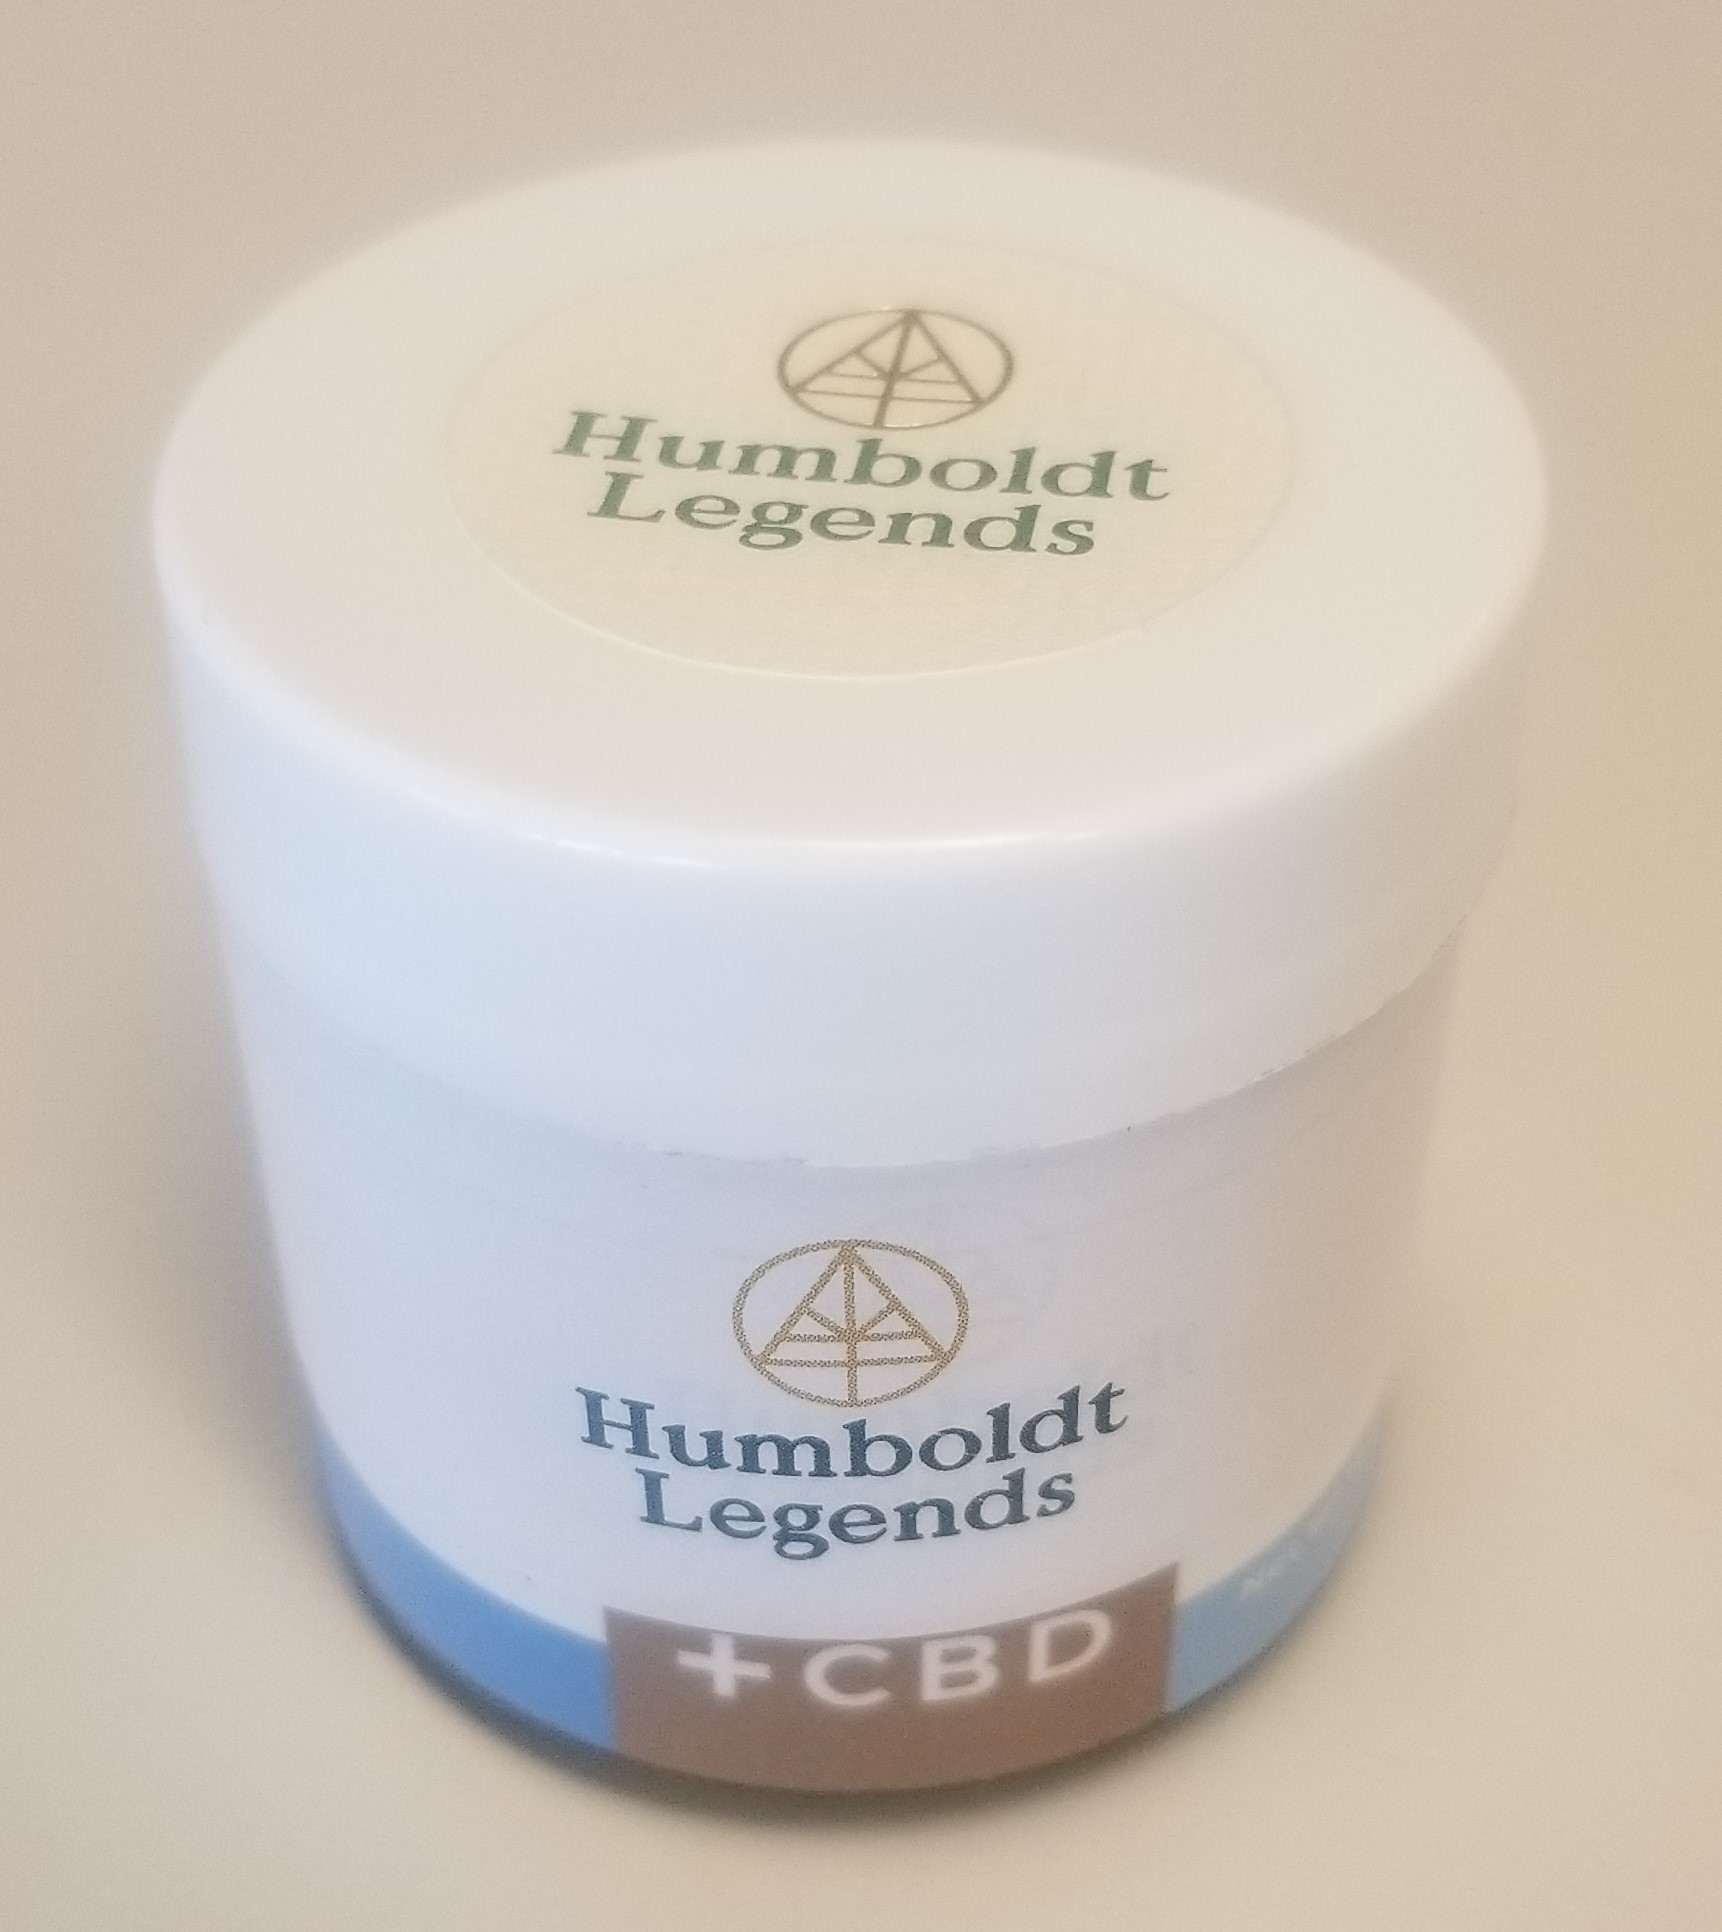 Humboldt Legends Medicated Herbal Topical Cream with CBD - Medicated Skin Care Product Contains CBD